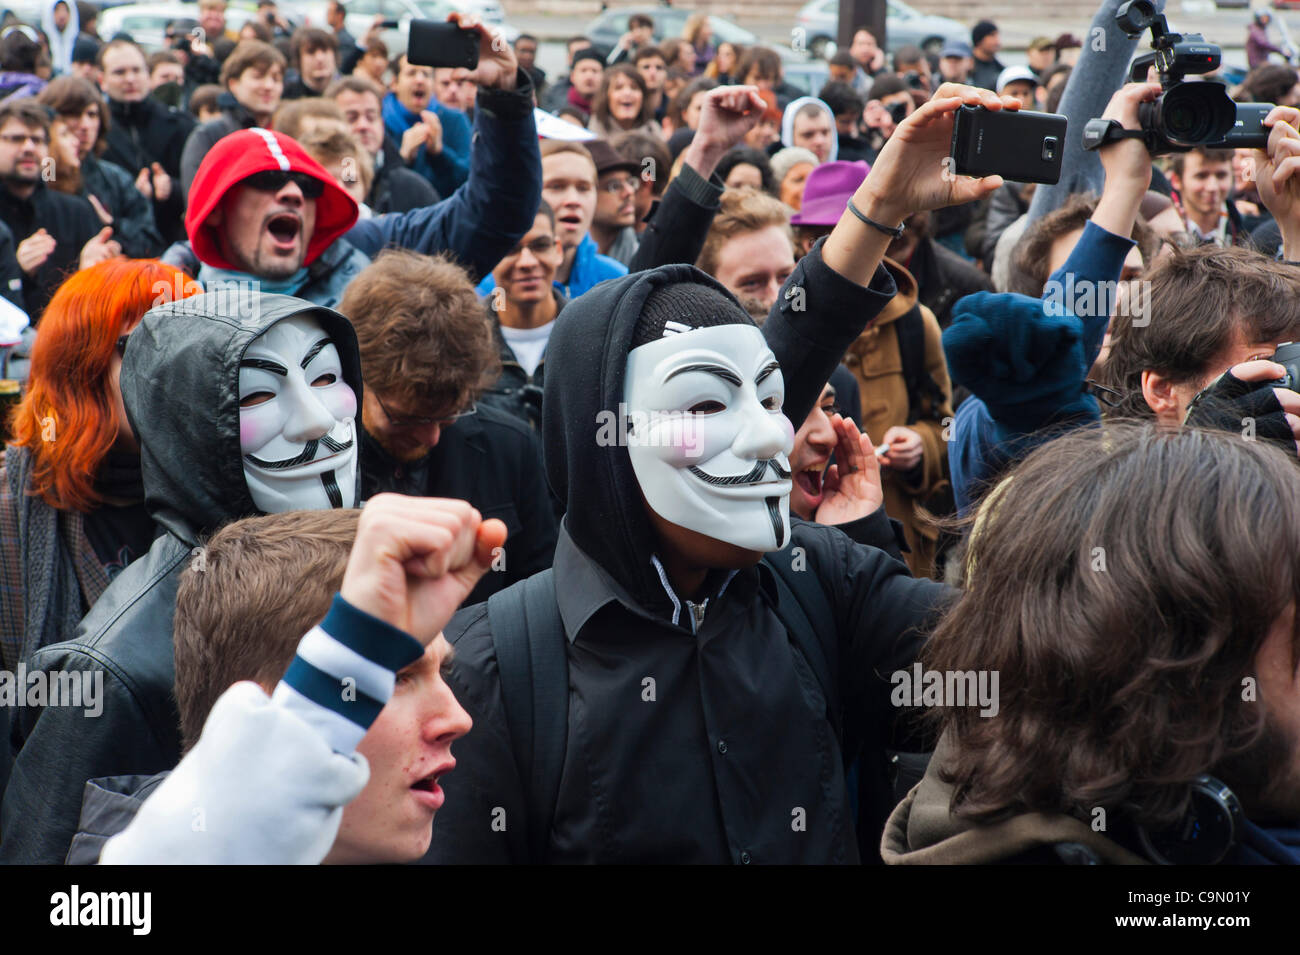 Anonymous Crowd Protest Against Internet Anti-Piracy Law, ACTA (Anti-Counterfeiting Trade Agreement), a bill that - Stock Image